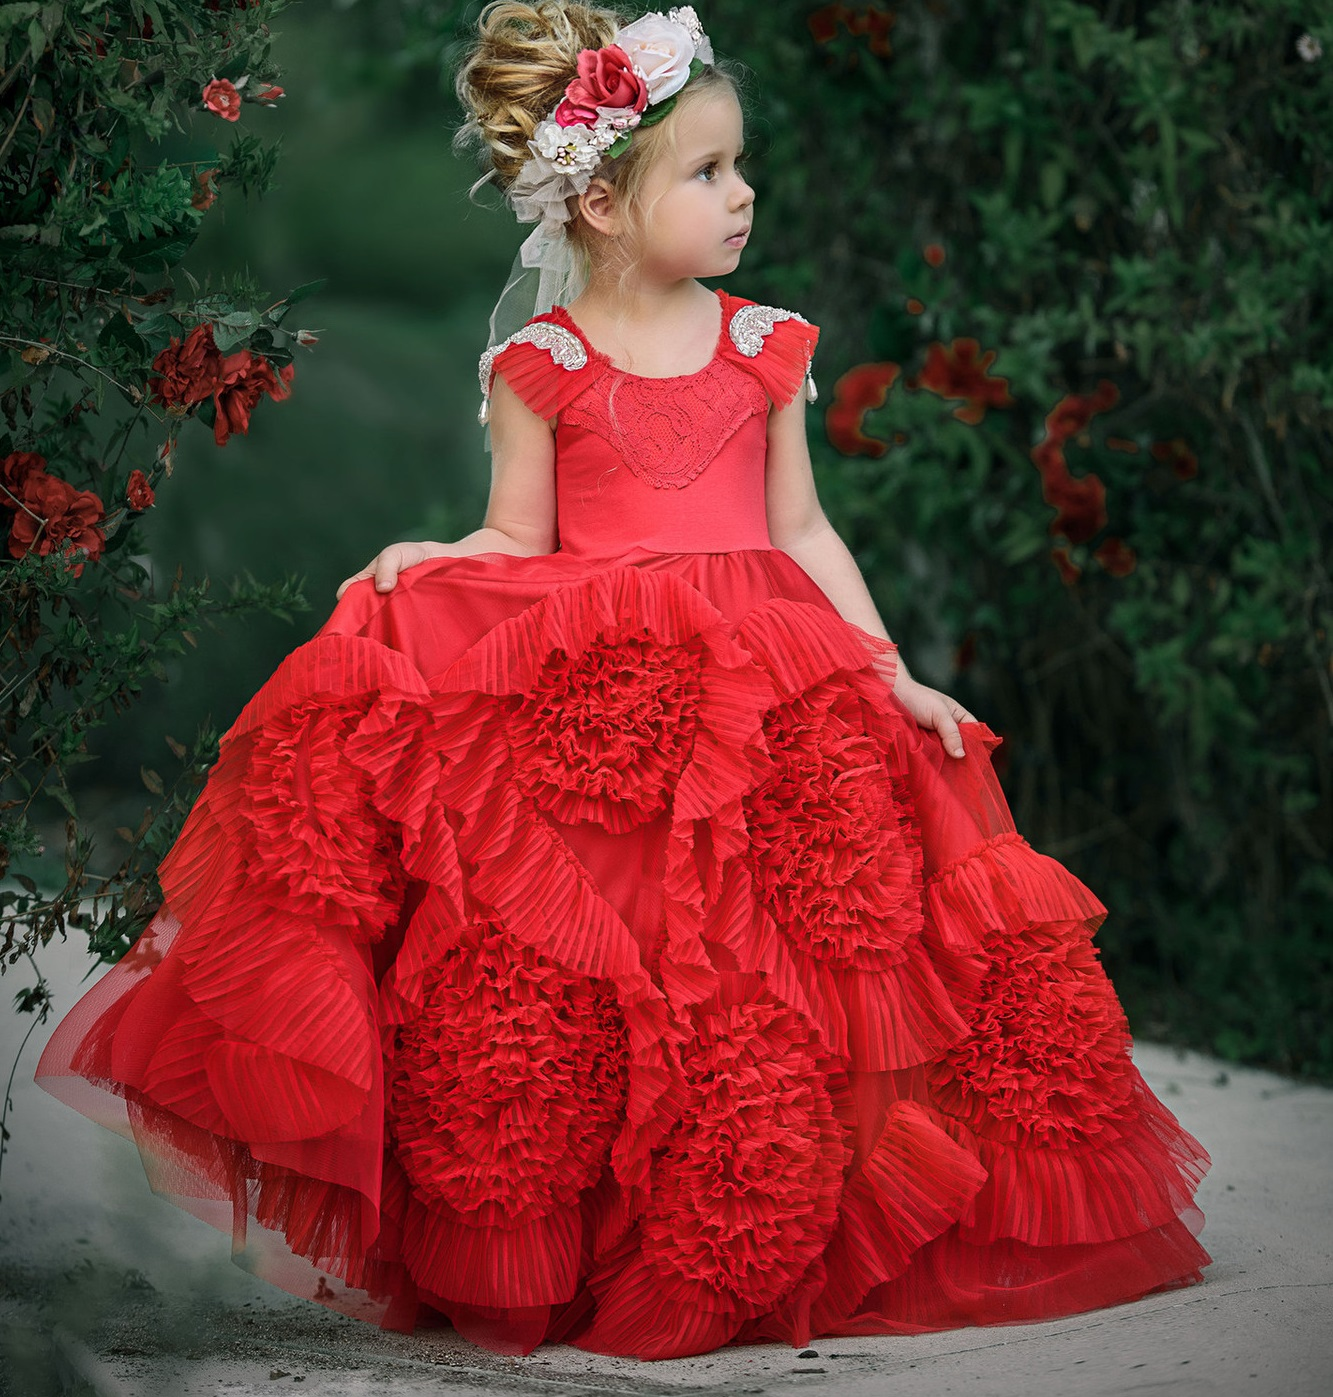 pp789 Europe and America round-neck lowers Ball Gown girls' stage Dress flowers children's wedding Dresses Girl Princess Dress white casual round neck ruffled dress